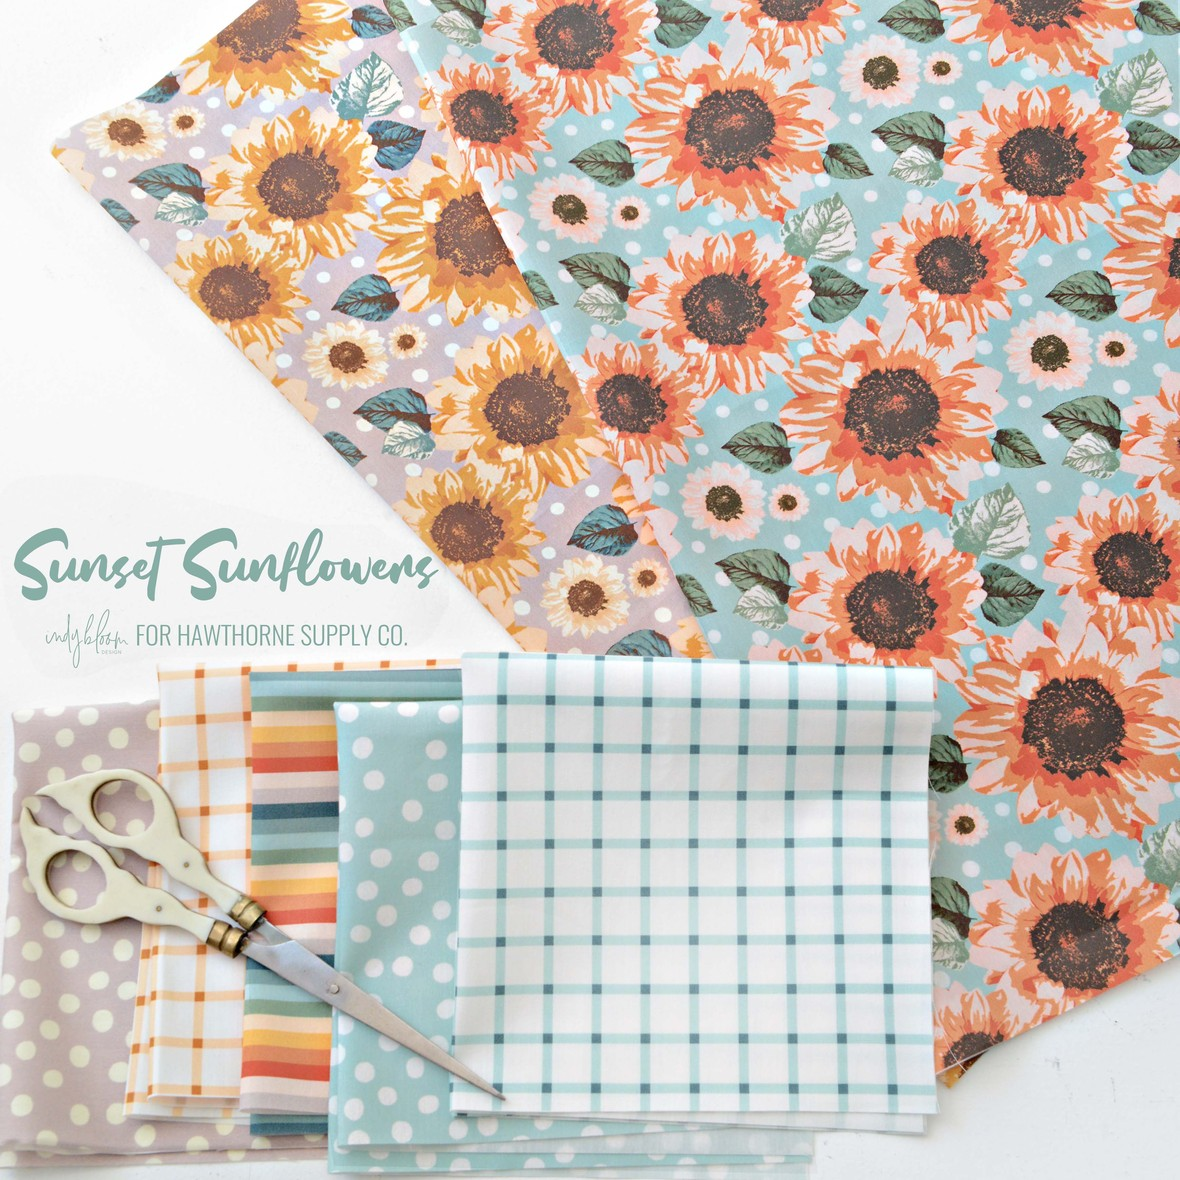 Sunset Sunflowers fabric from Indy Bloom for Hawthorne Supply Co. b